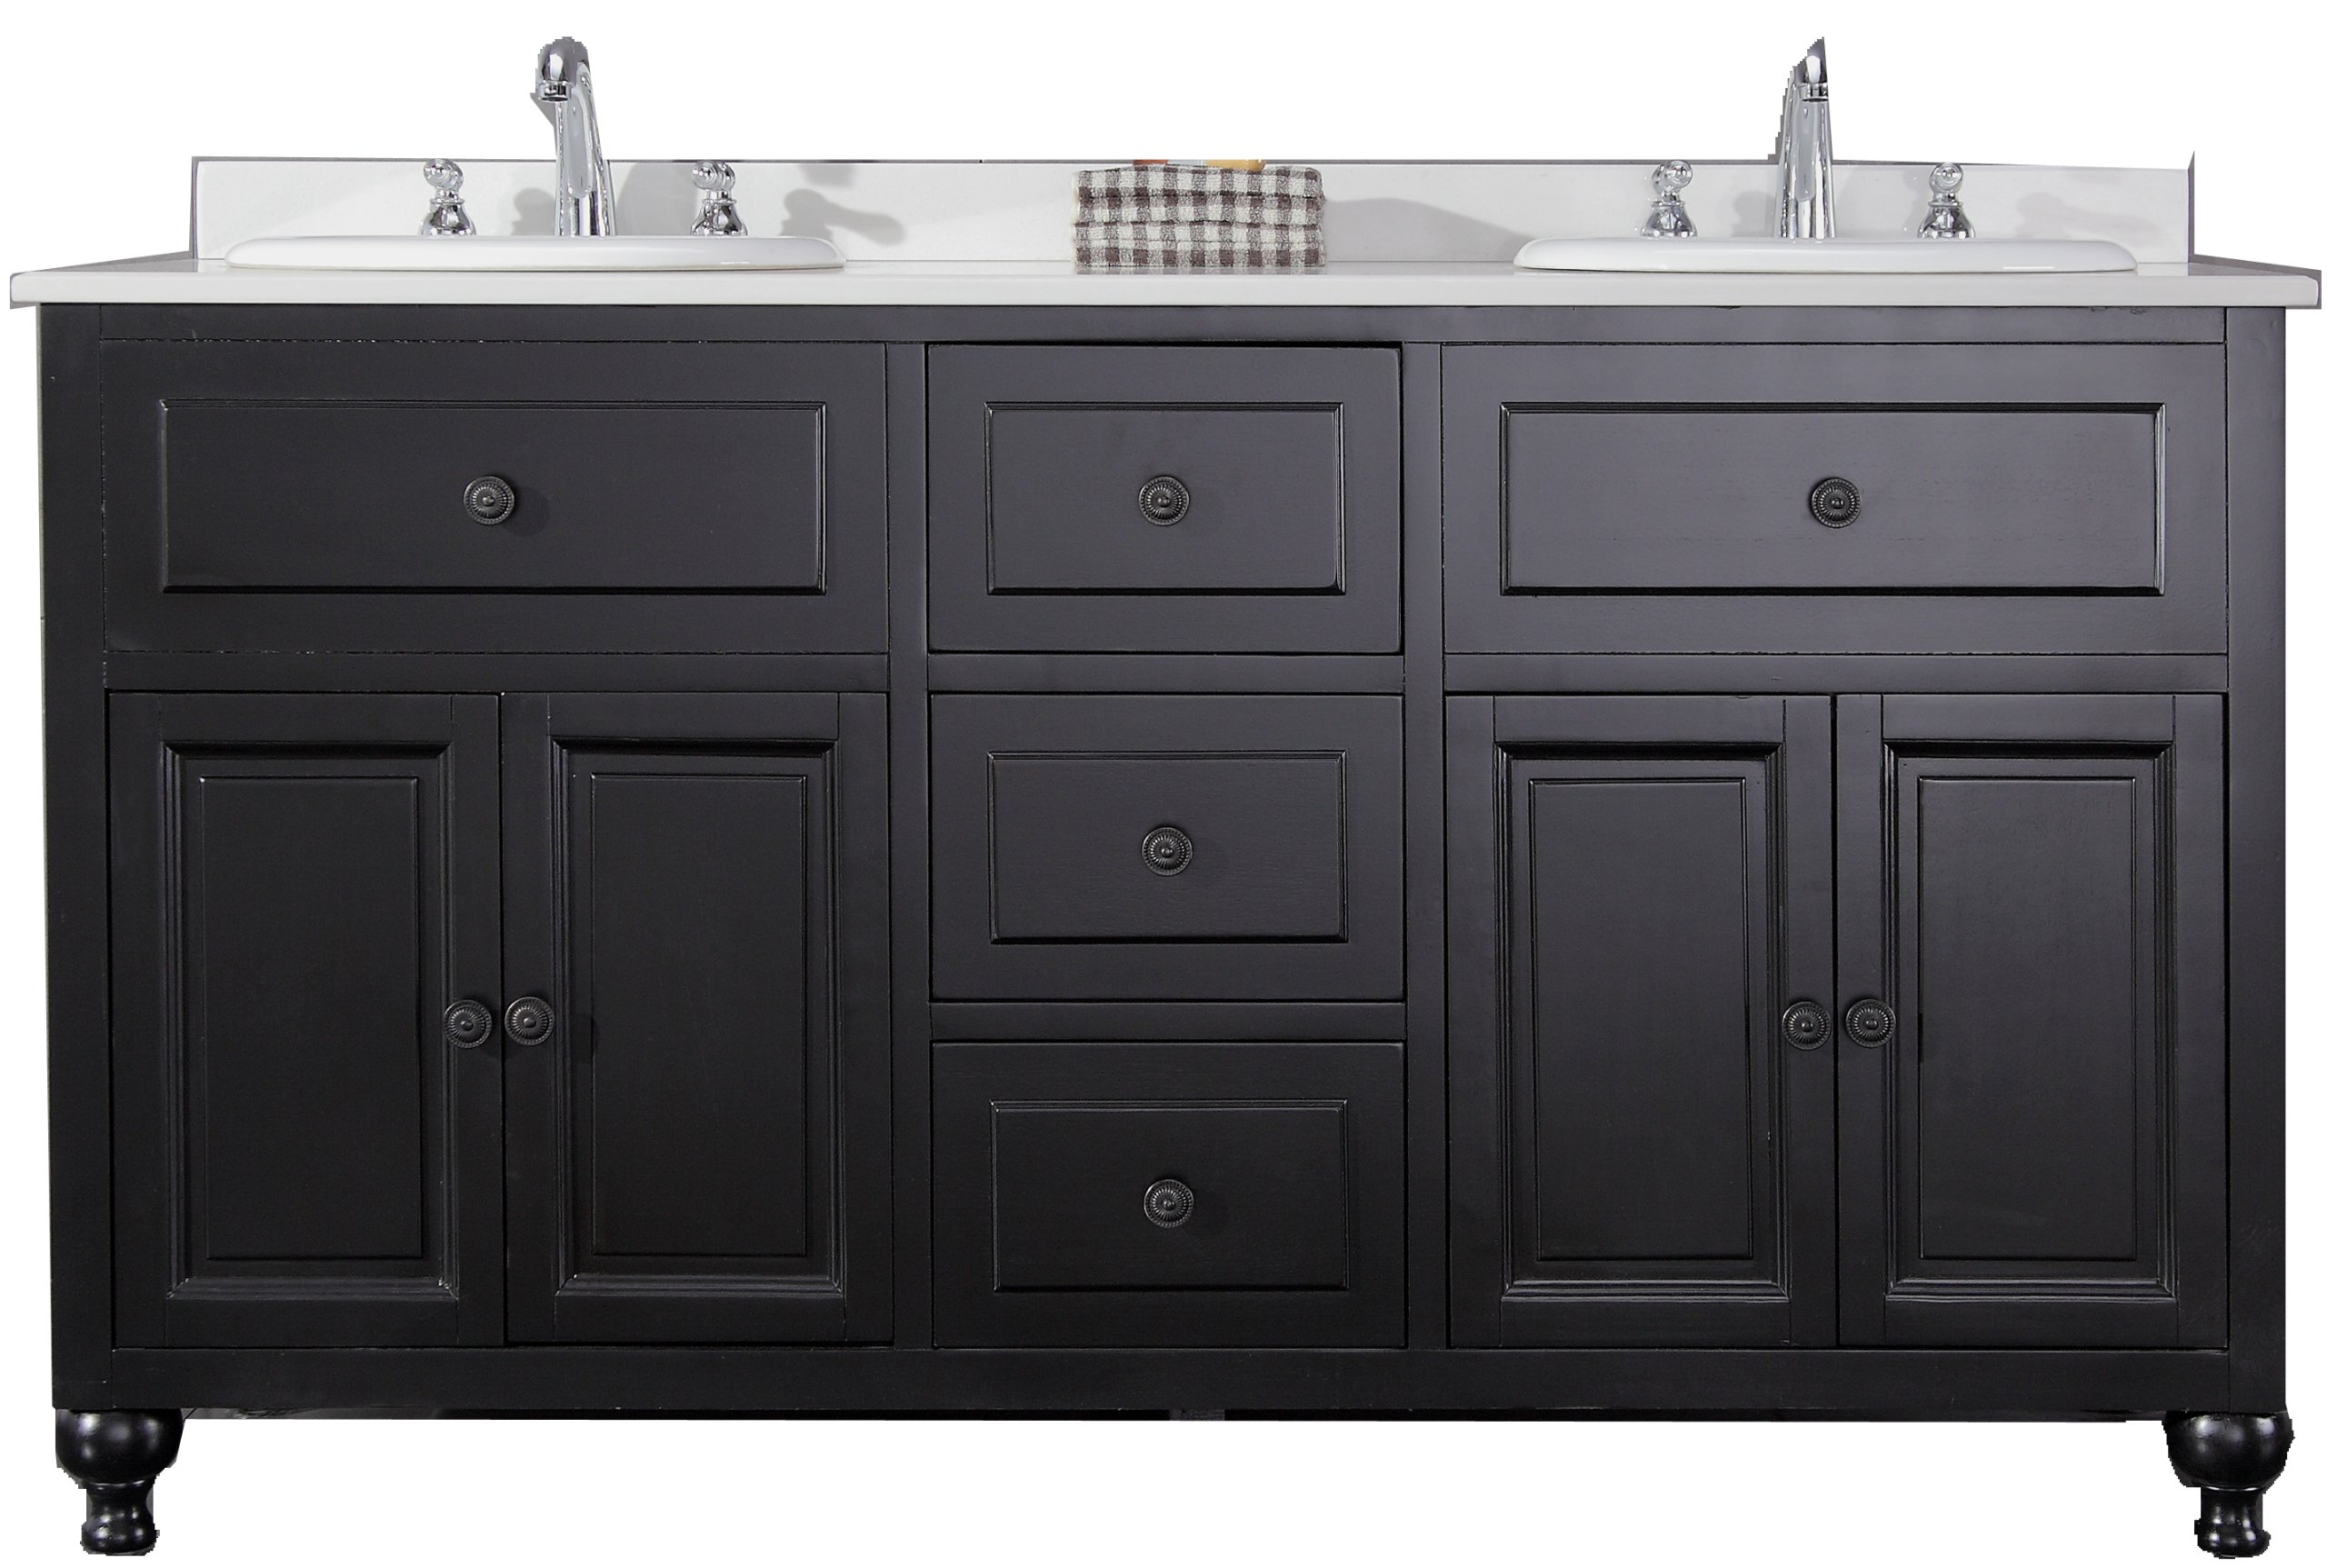 Ove Decors KensingtonDBL-VB Double Vanity with White Marble Countertop and Double Ceramic Basins, 60-Inch Wide, Dark Stain - Solid hardwood furniture Dark stain finish Sealed white man-made marble countertop and overmount ceramic basin - bathroom-vanities, bathroom-fixtures-hardware, bathroom - 81QIKp2%2BnHL -